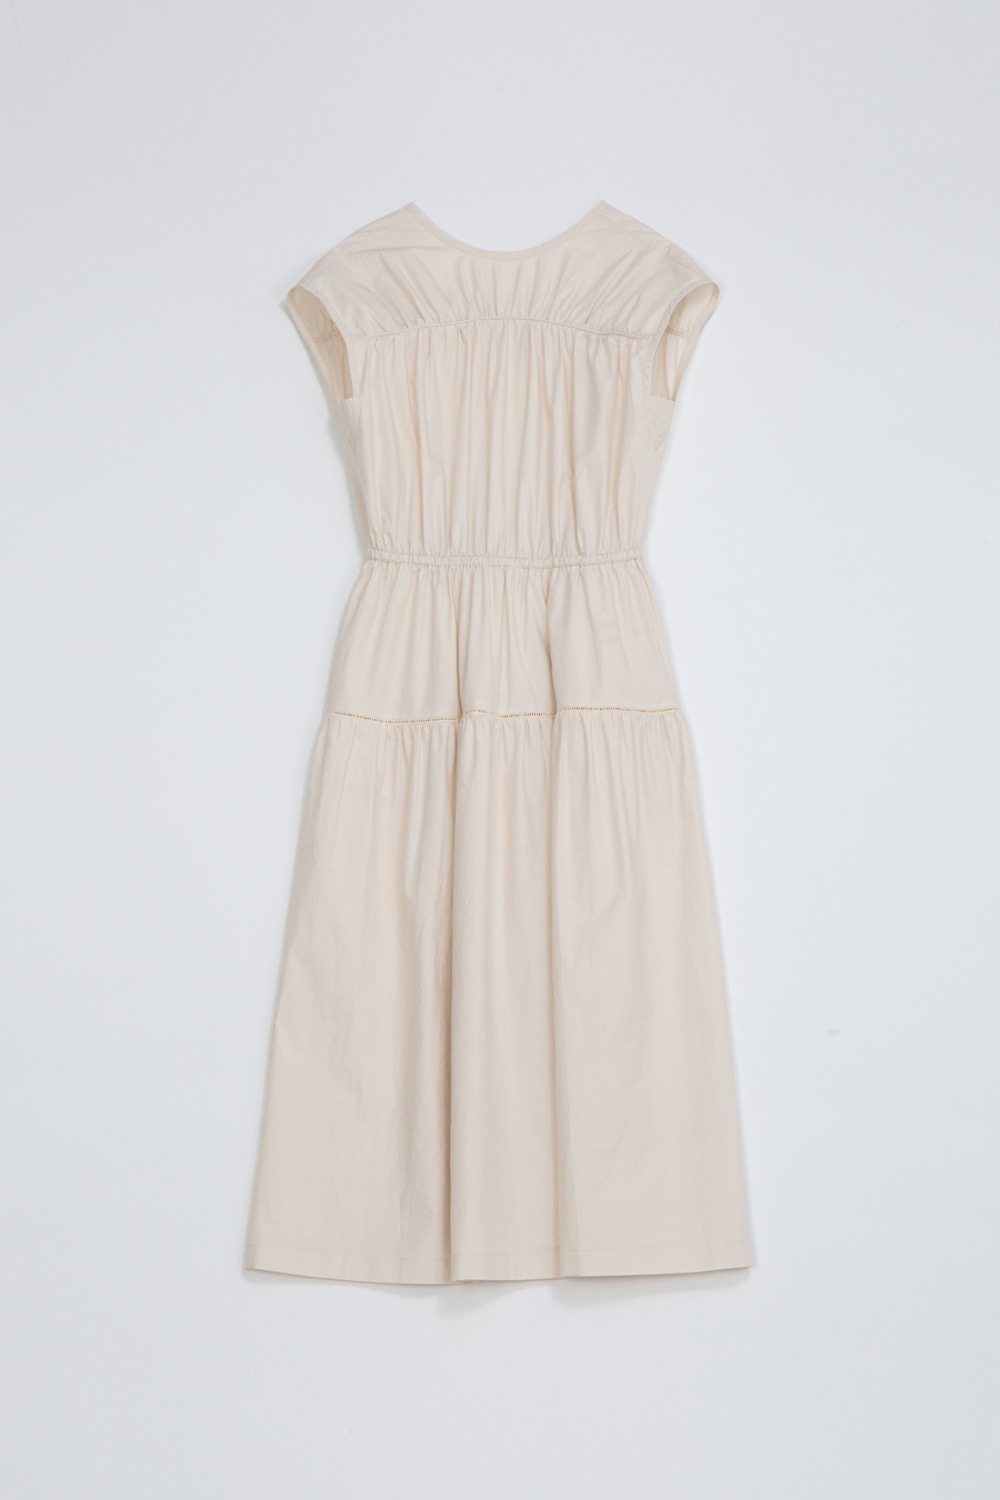 DE CUT-OUT DRESS - IVORY COTTON